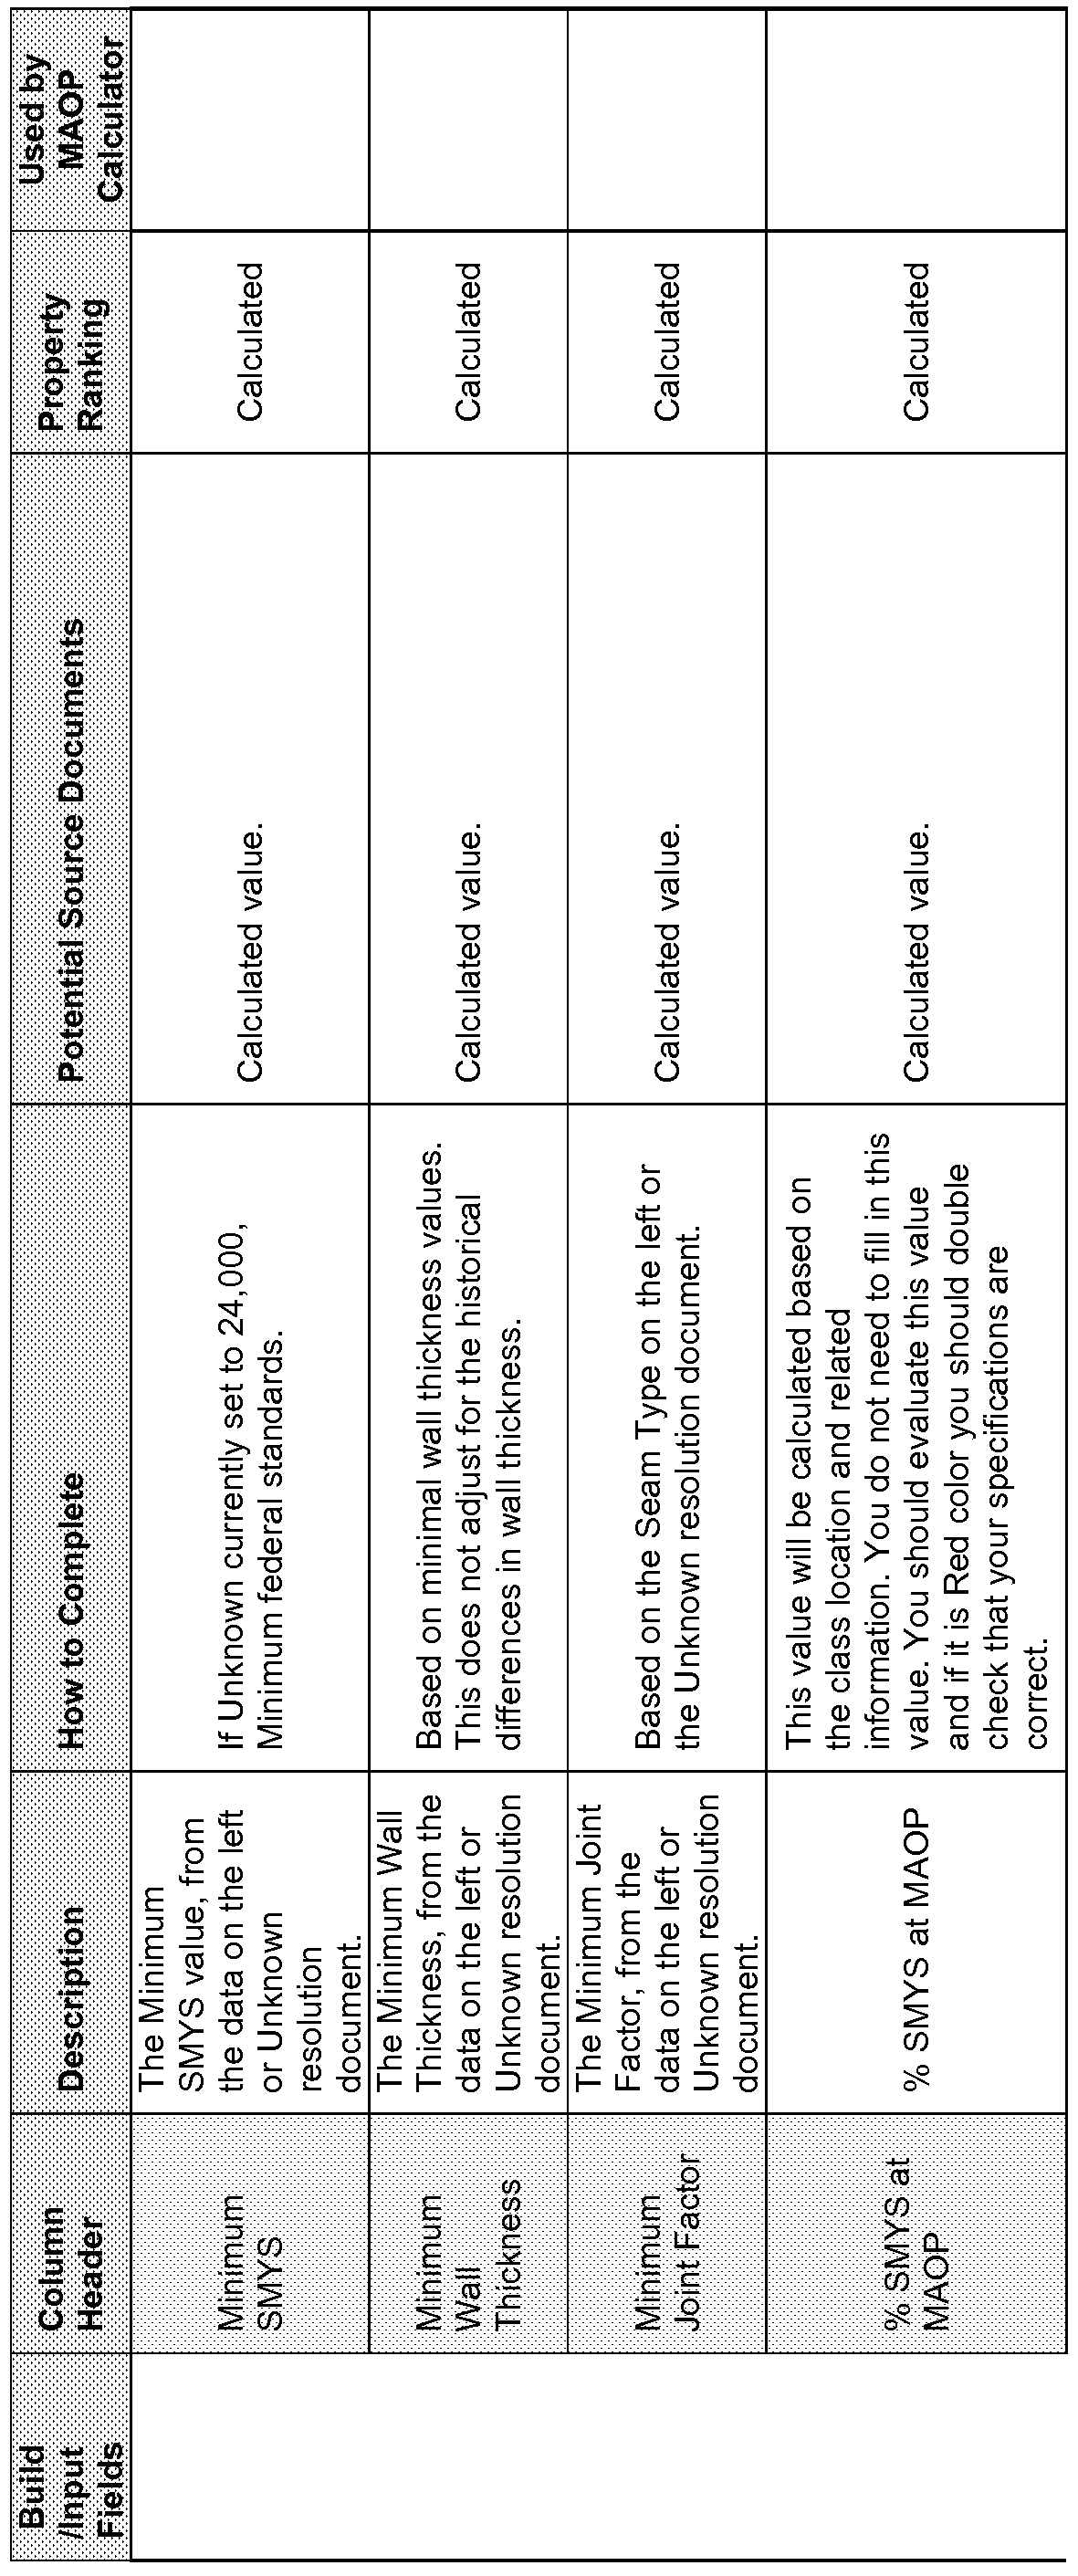 WO2013192247A1 - System and method for calculating and